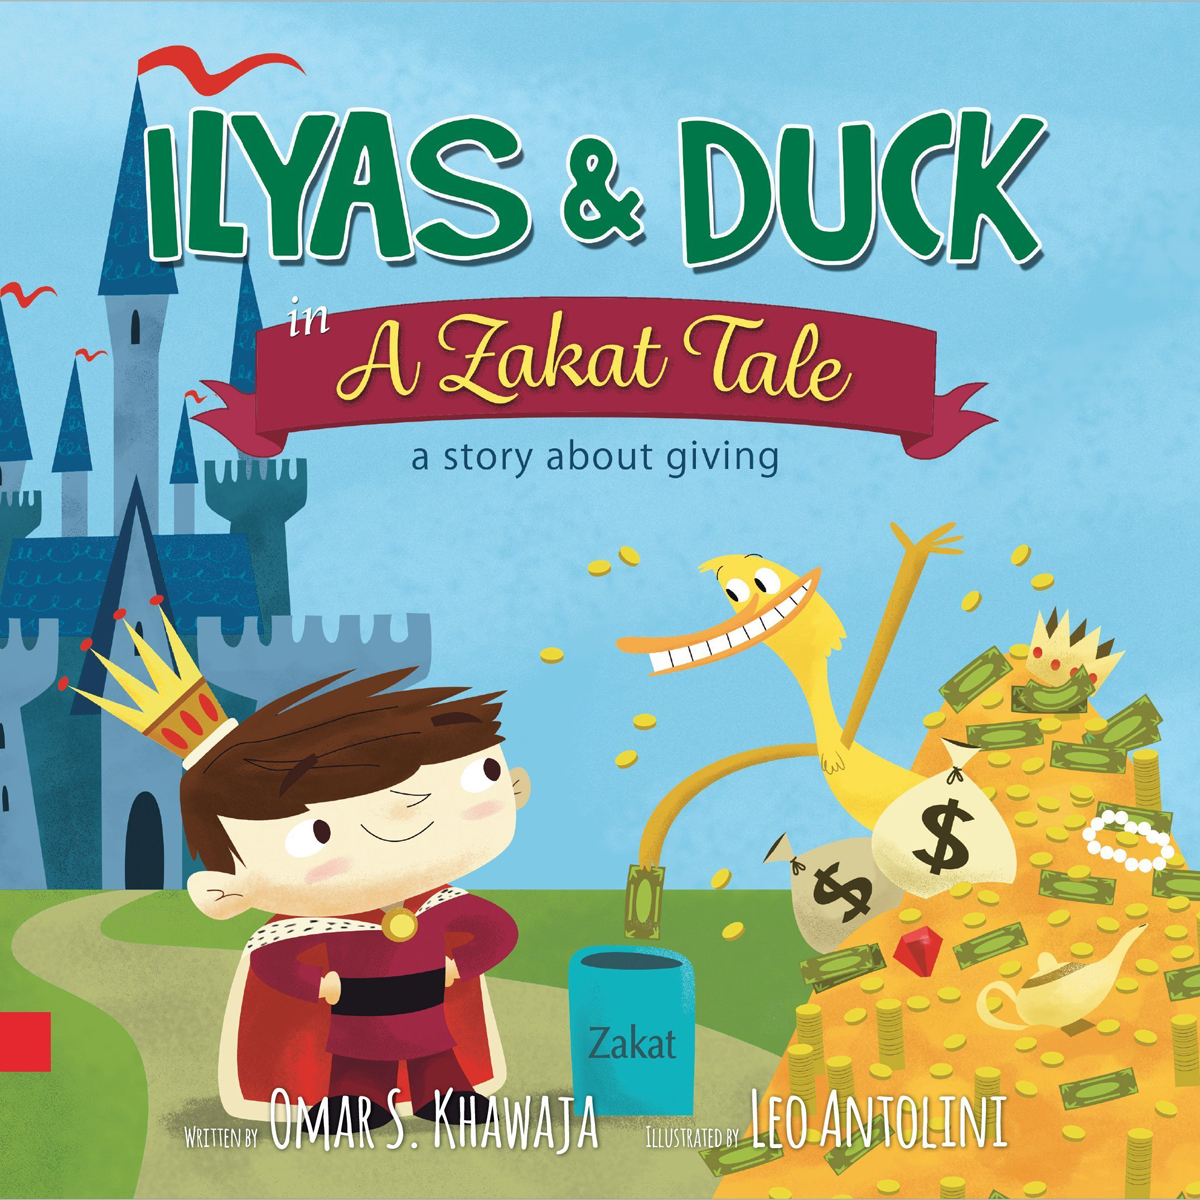 ilyas-and-duck-in-a-zakat-tale-a-story-about-giving-omar-khwaja-5.gif